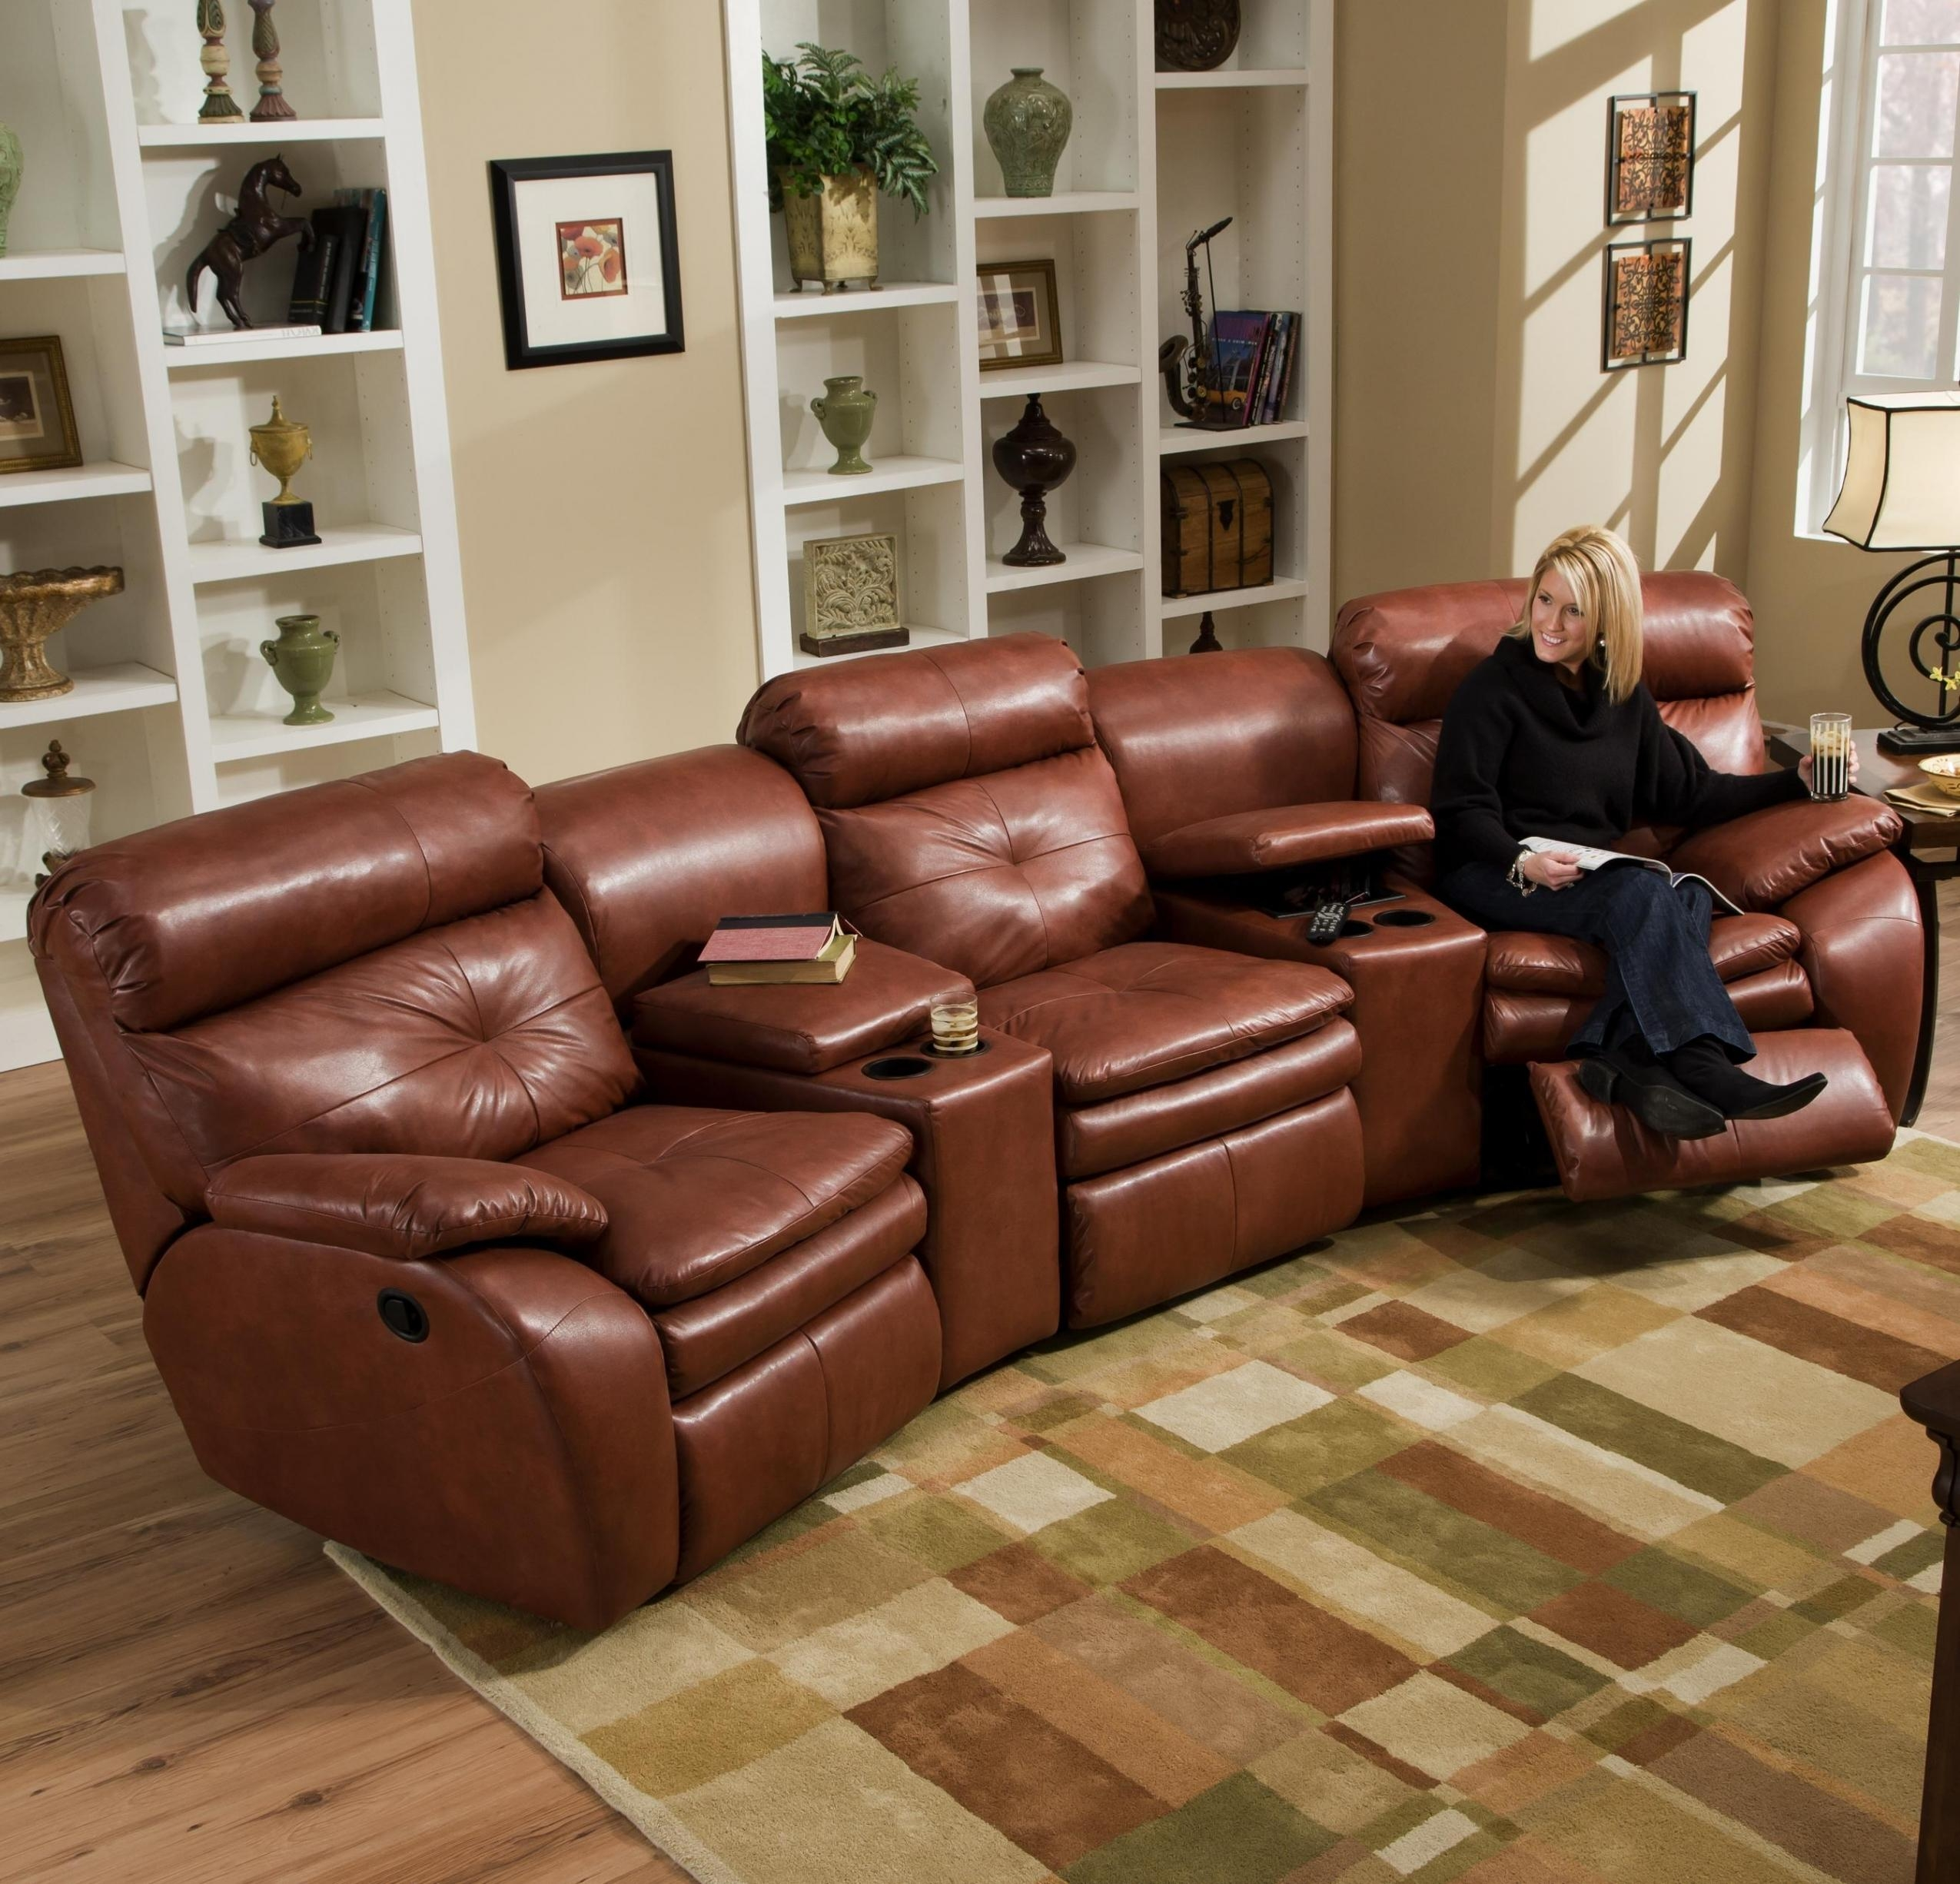 Fresh Sectional Sofas With Recliners And Cup Holders | Sofa Ideas Intended For Sofas With Cup Holders (View 7 of 20)